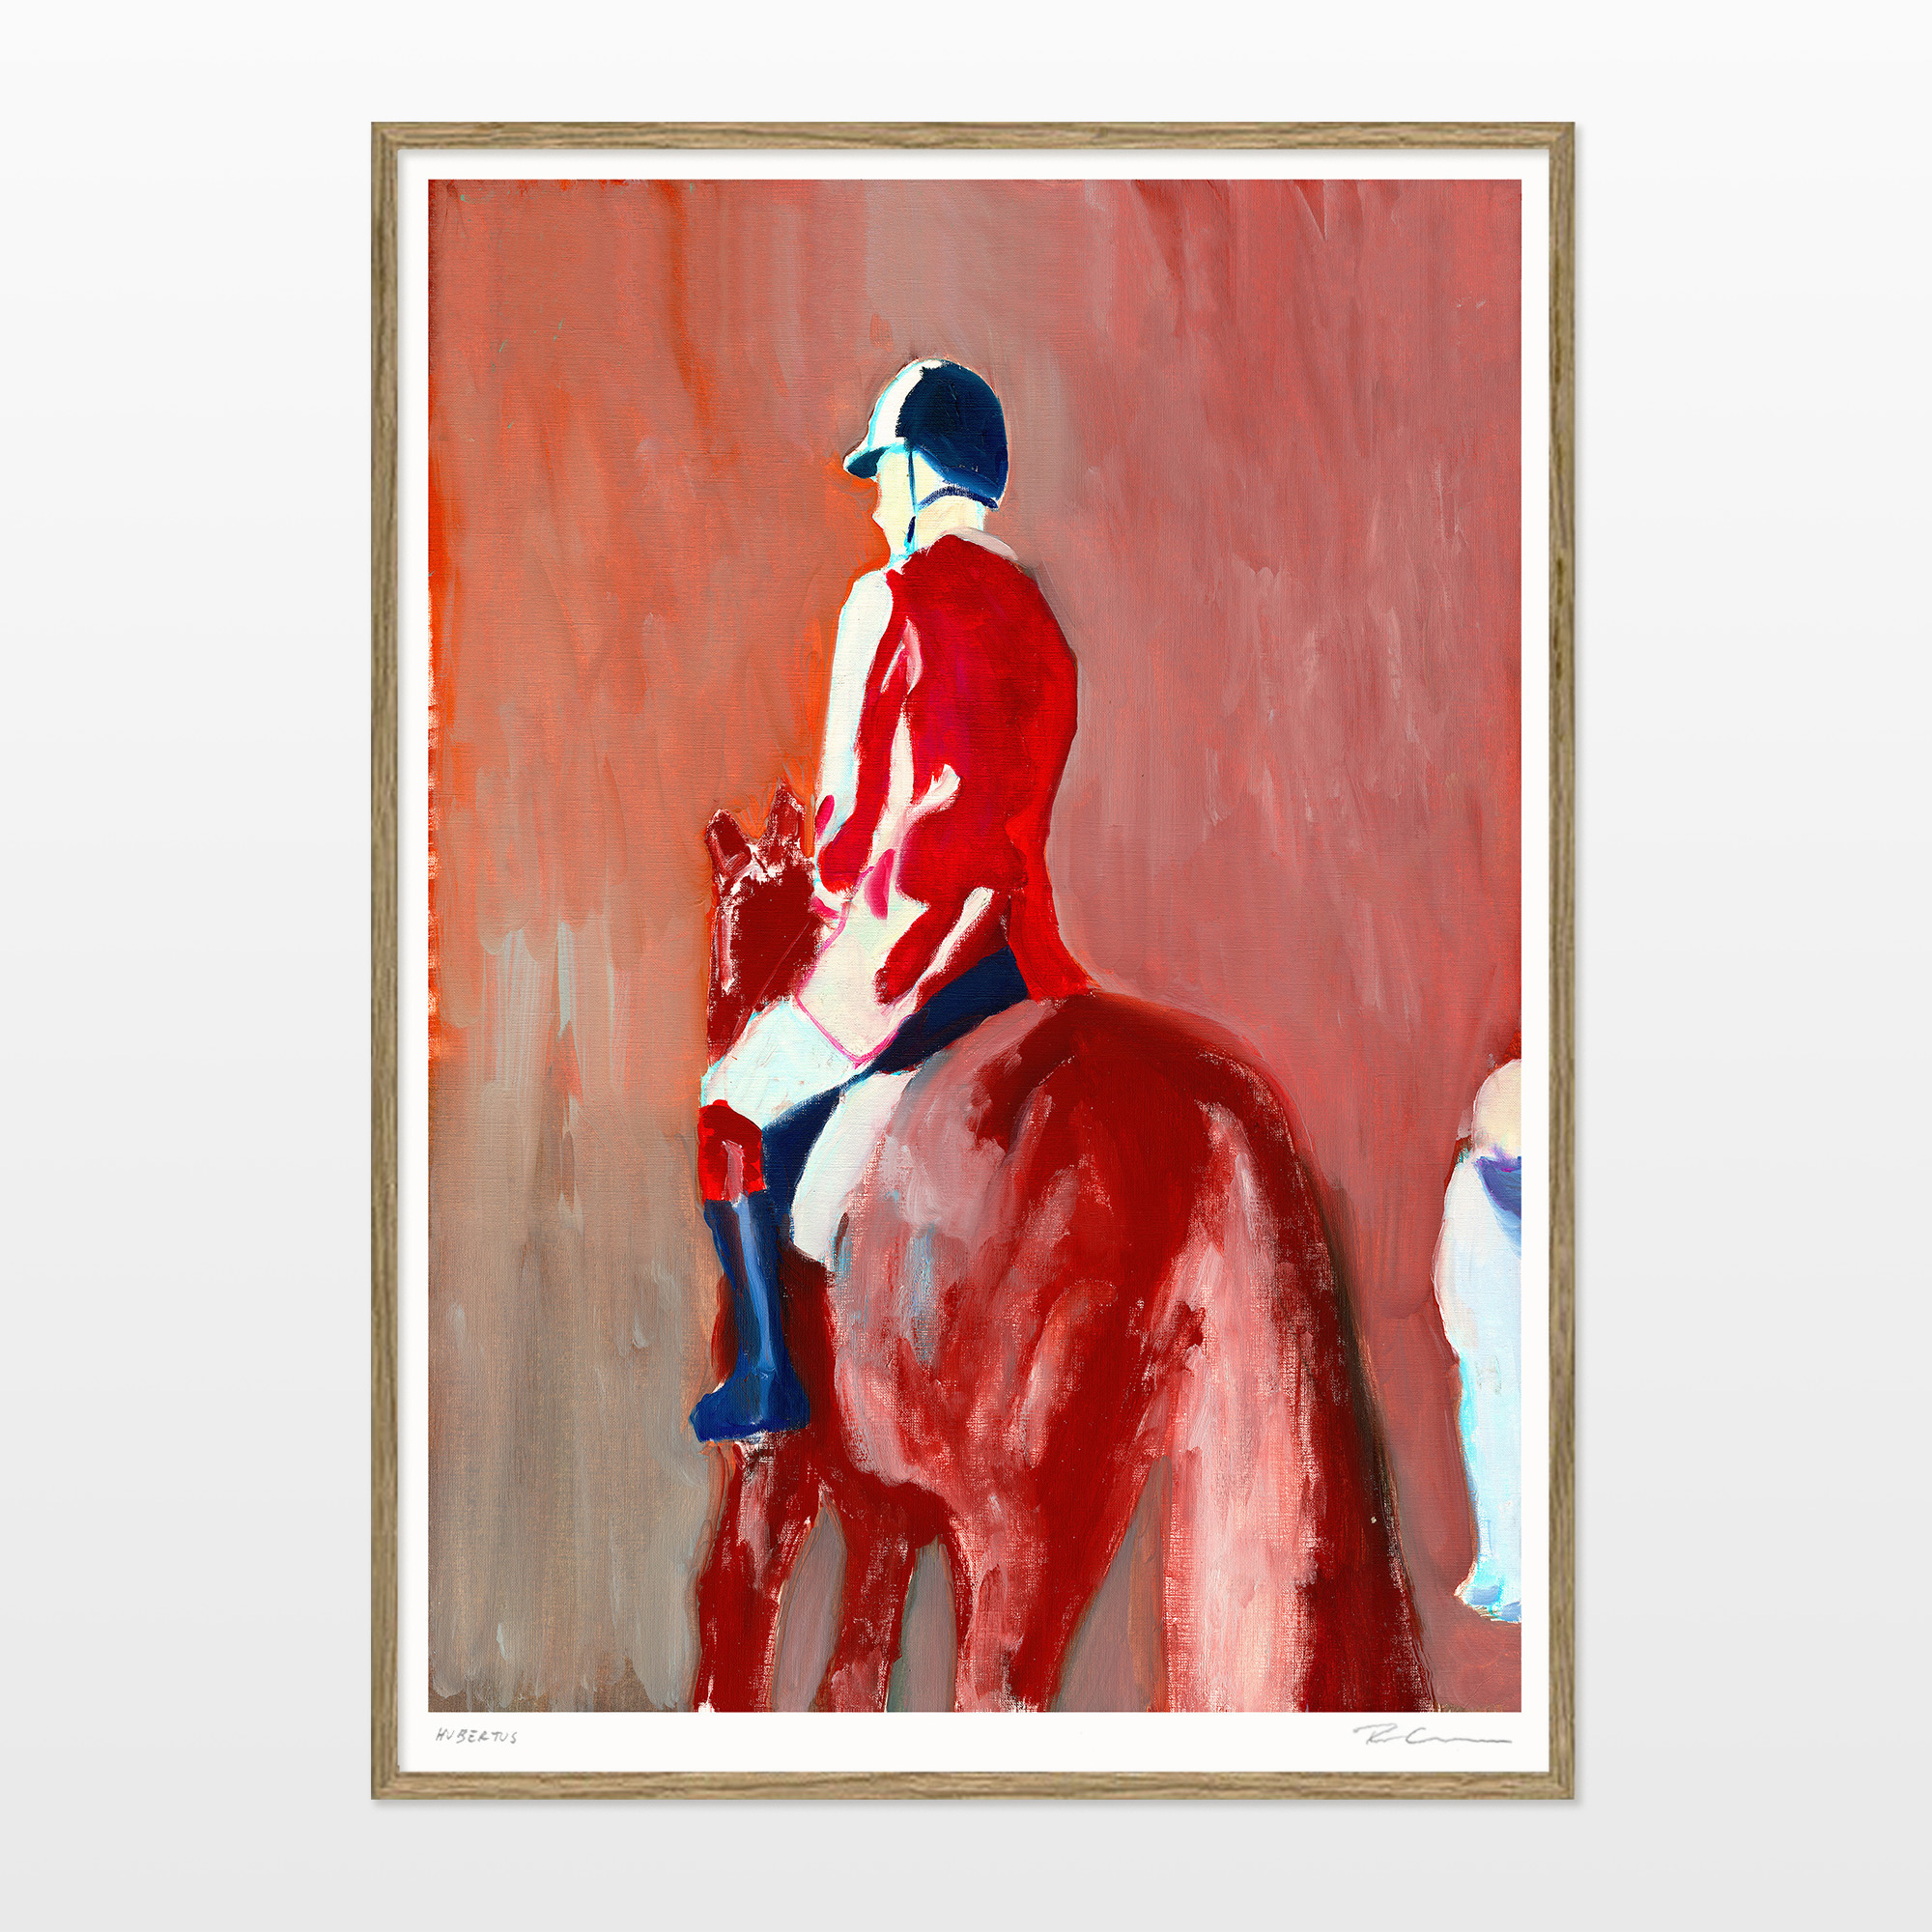 posters-prints, giclee-print, aesthetic, colorful, figurative, illustrative, landscape, minimalistic, animals, movement, people, transportation, wildlife, brown, grey, red, ink, paper, beautiful, contemporary-art, danish, decorative, horses, interior, interior-design, modern, modern-art, nordic, scandinavien, Buy original high quality art. Paintings, drawings, limited edition prints & posters by talented artists.